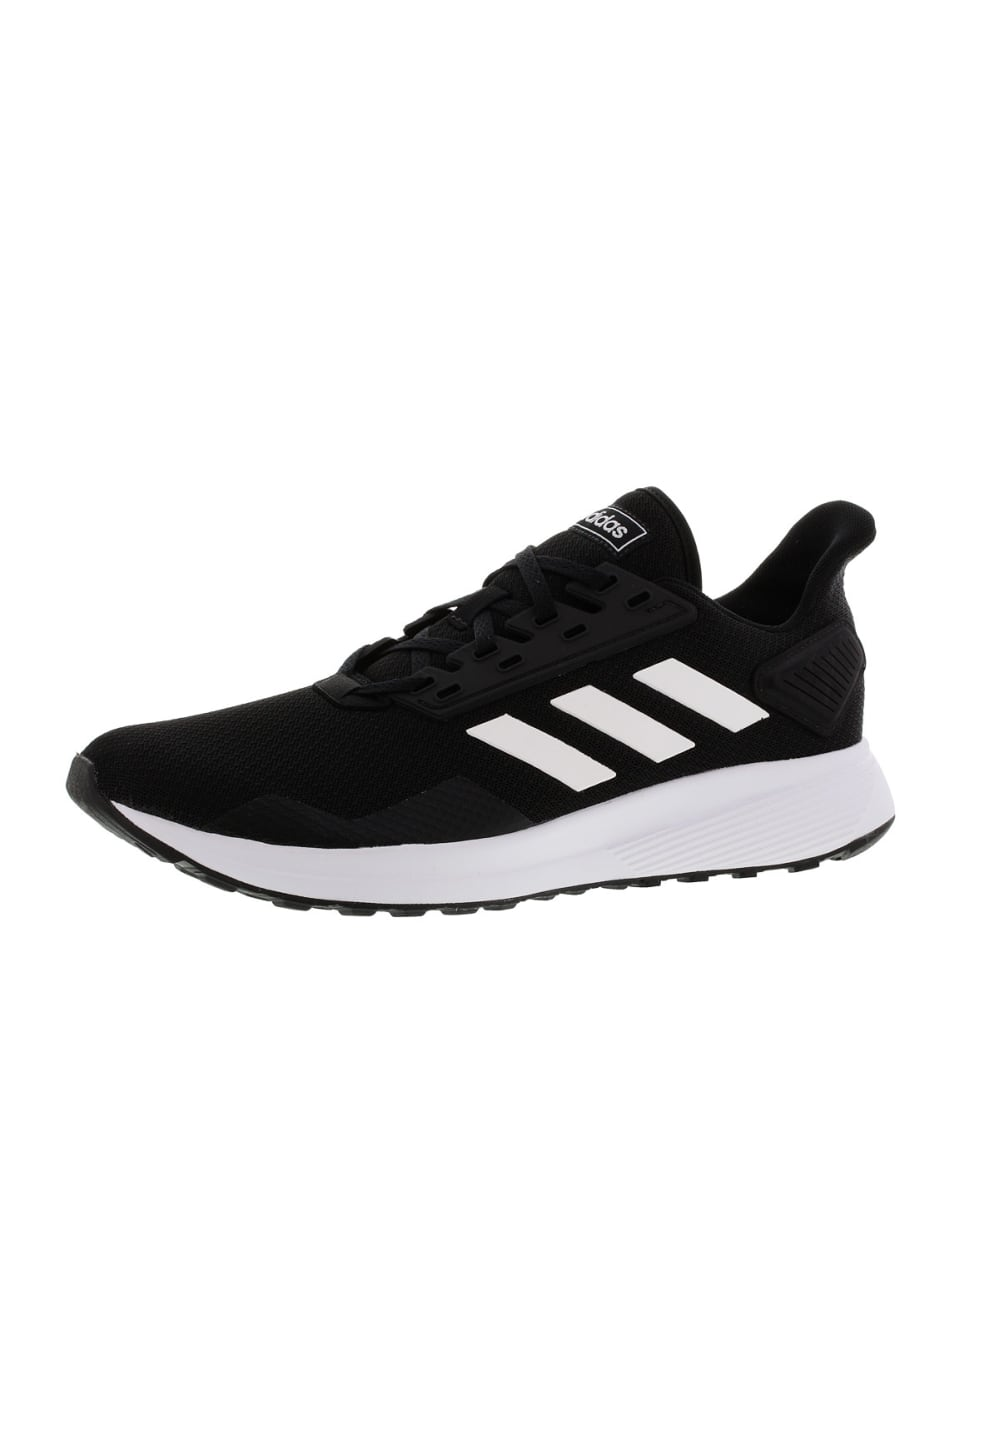 outlet store 98367 4ac72 adidas Duramo 9 - Running shoes for Men - Black  21RUN